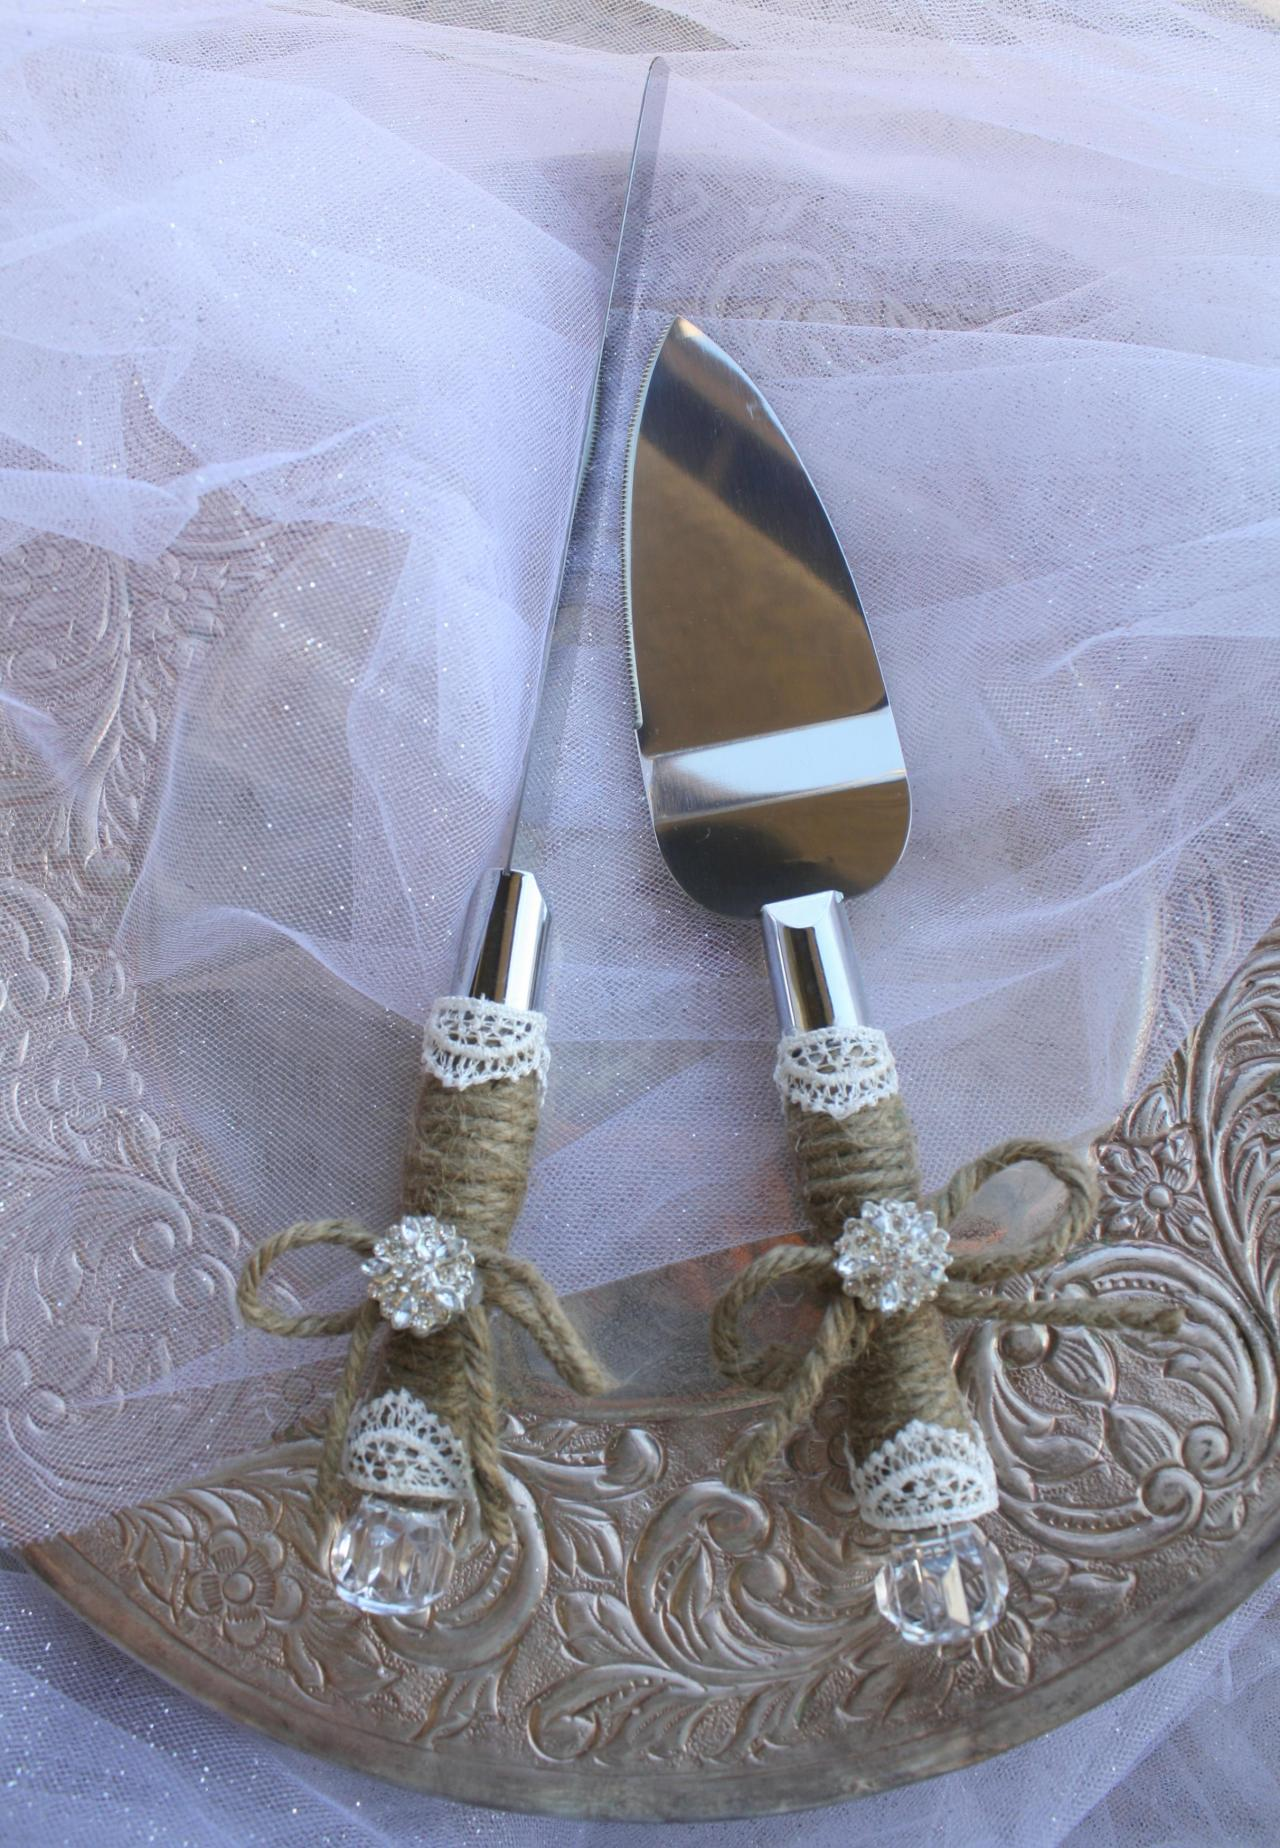 Wedding Cake Server And Knife Set - Country Rustic Chic Wedding -Cake Server Set - Jute and Lace Caker Server